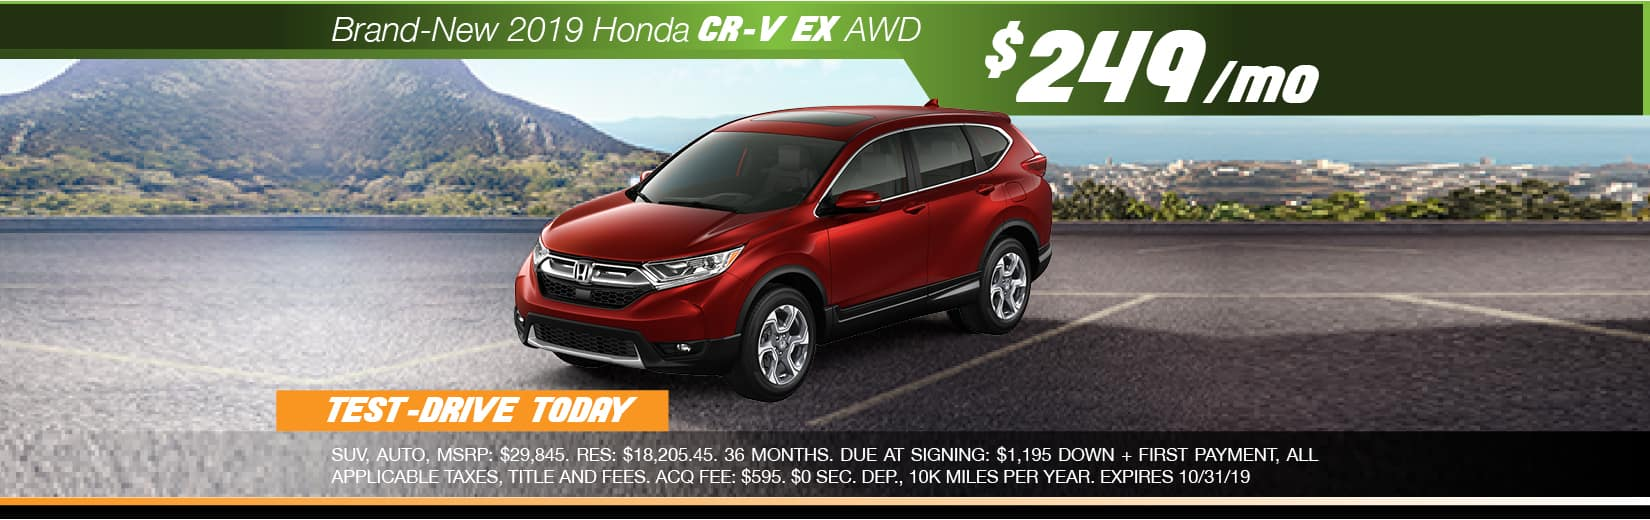 2019 Honda CR-V EX AWD Lease for $249 a month for 36 months